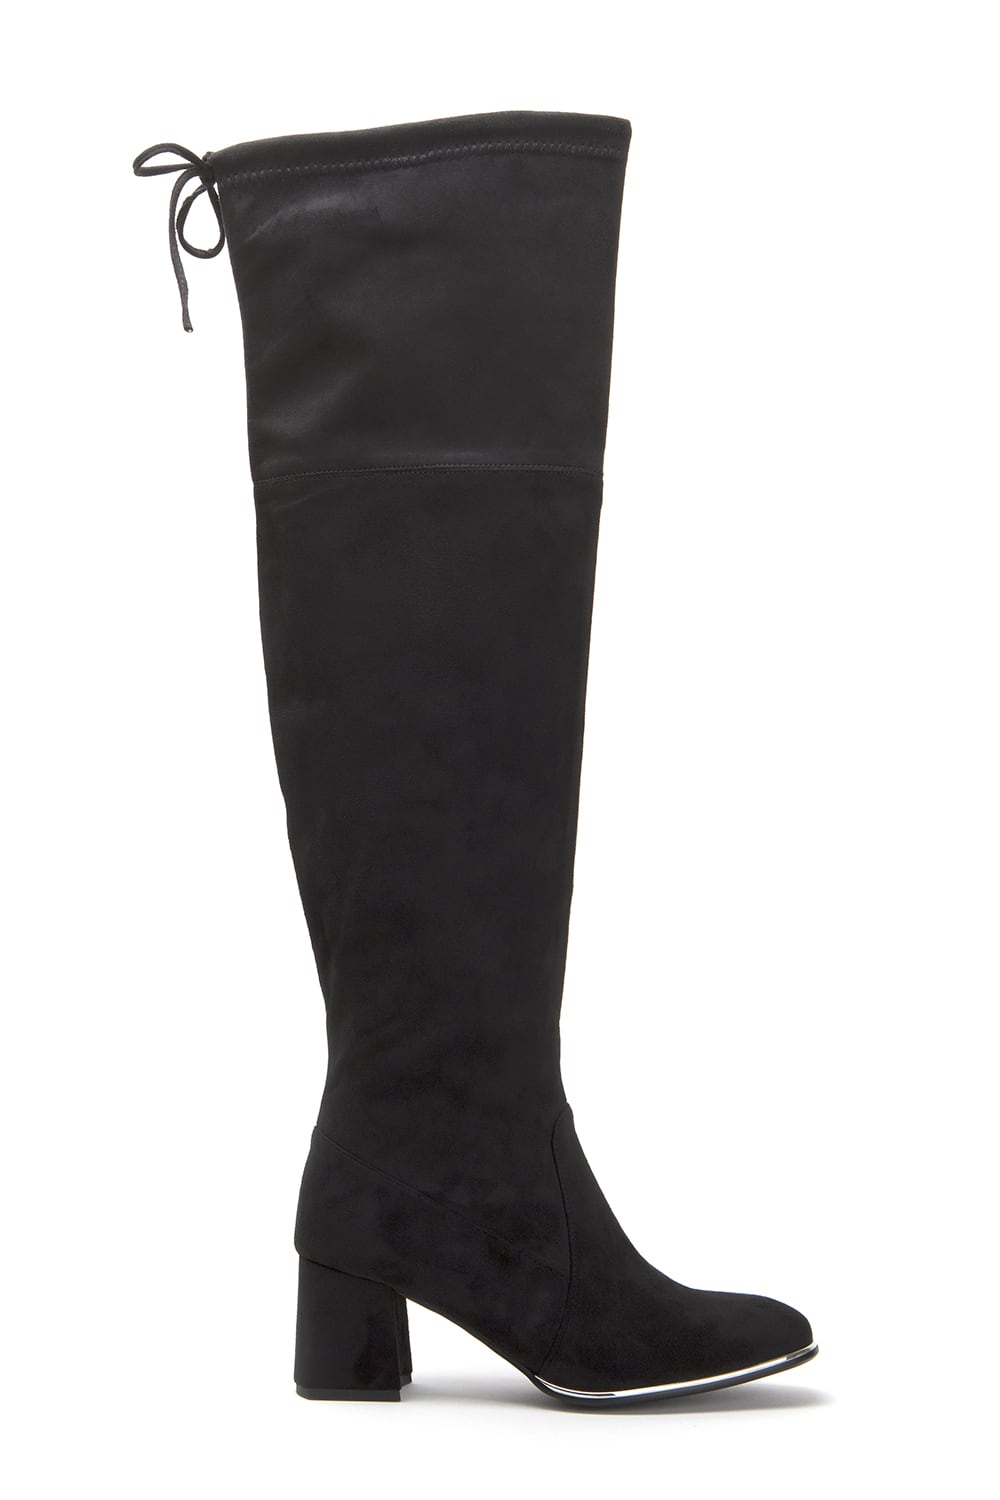 Amber Black S mrs fred   boots   more